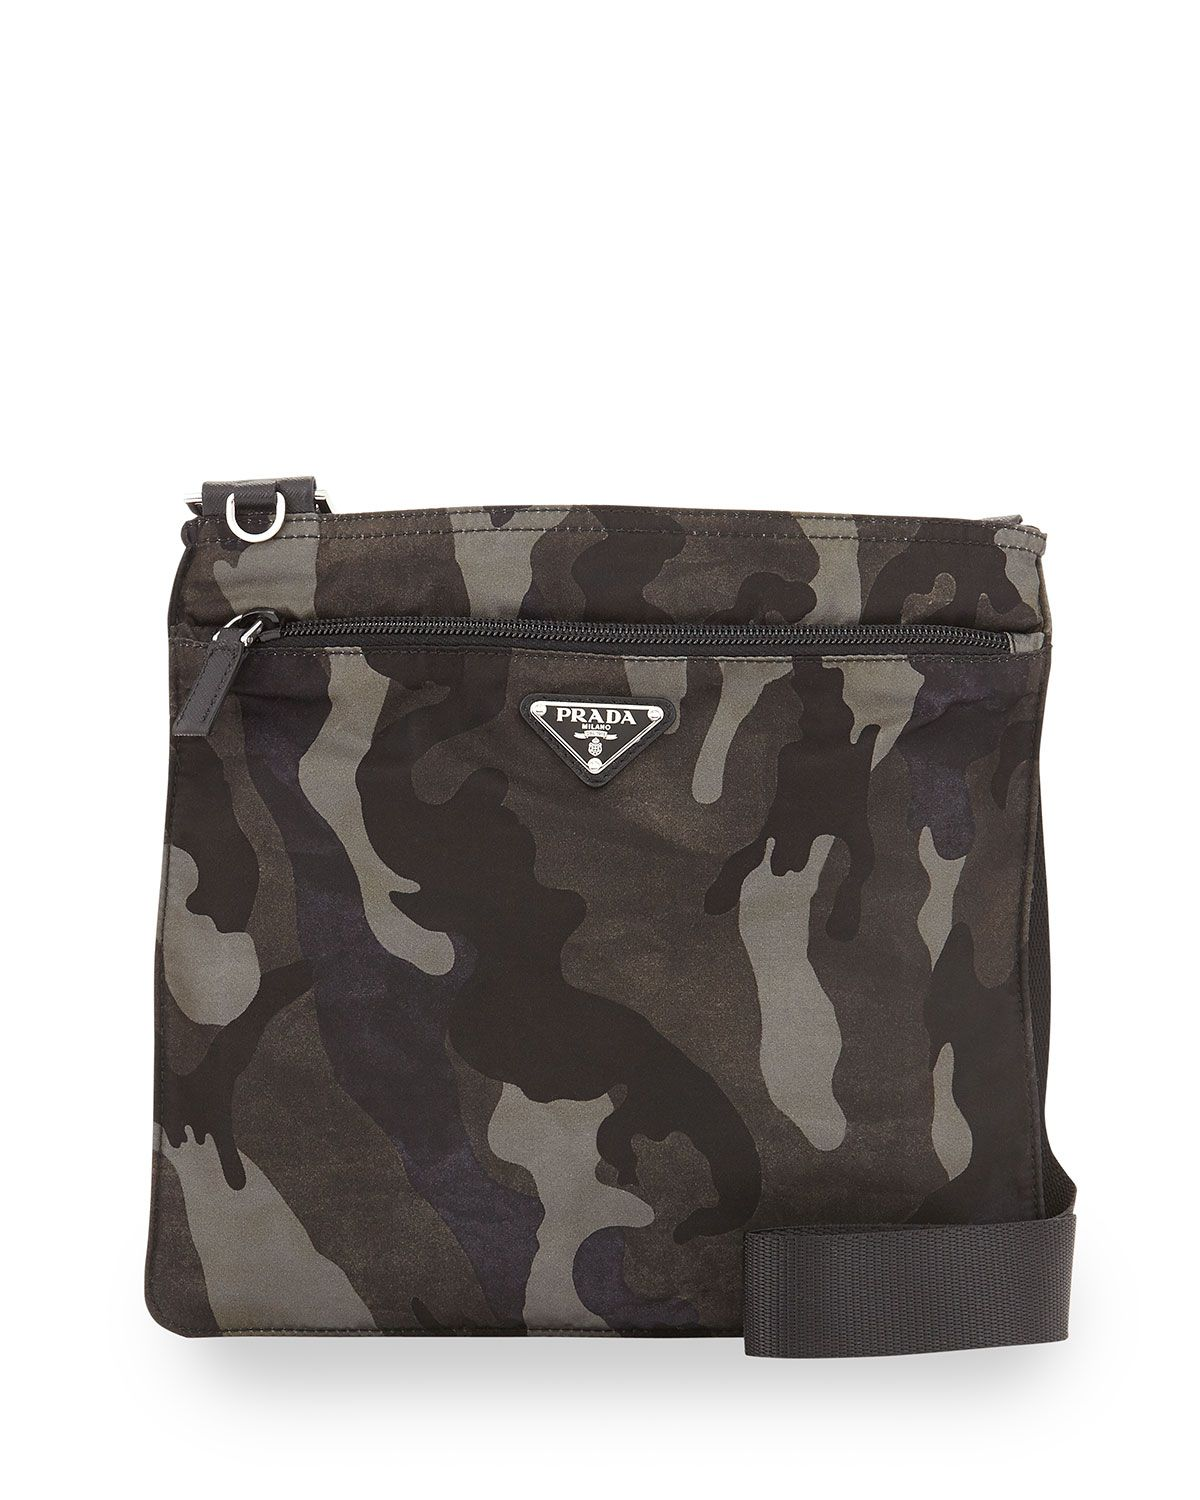 7277ae970df8 Prada Tessuto Camo-Print Crossbody Bag, Gray Multi (Fumo ...